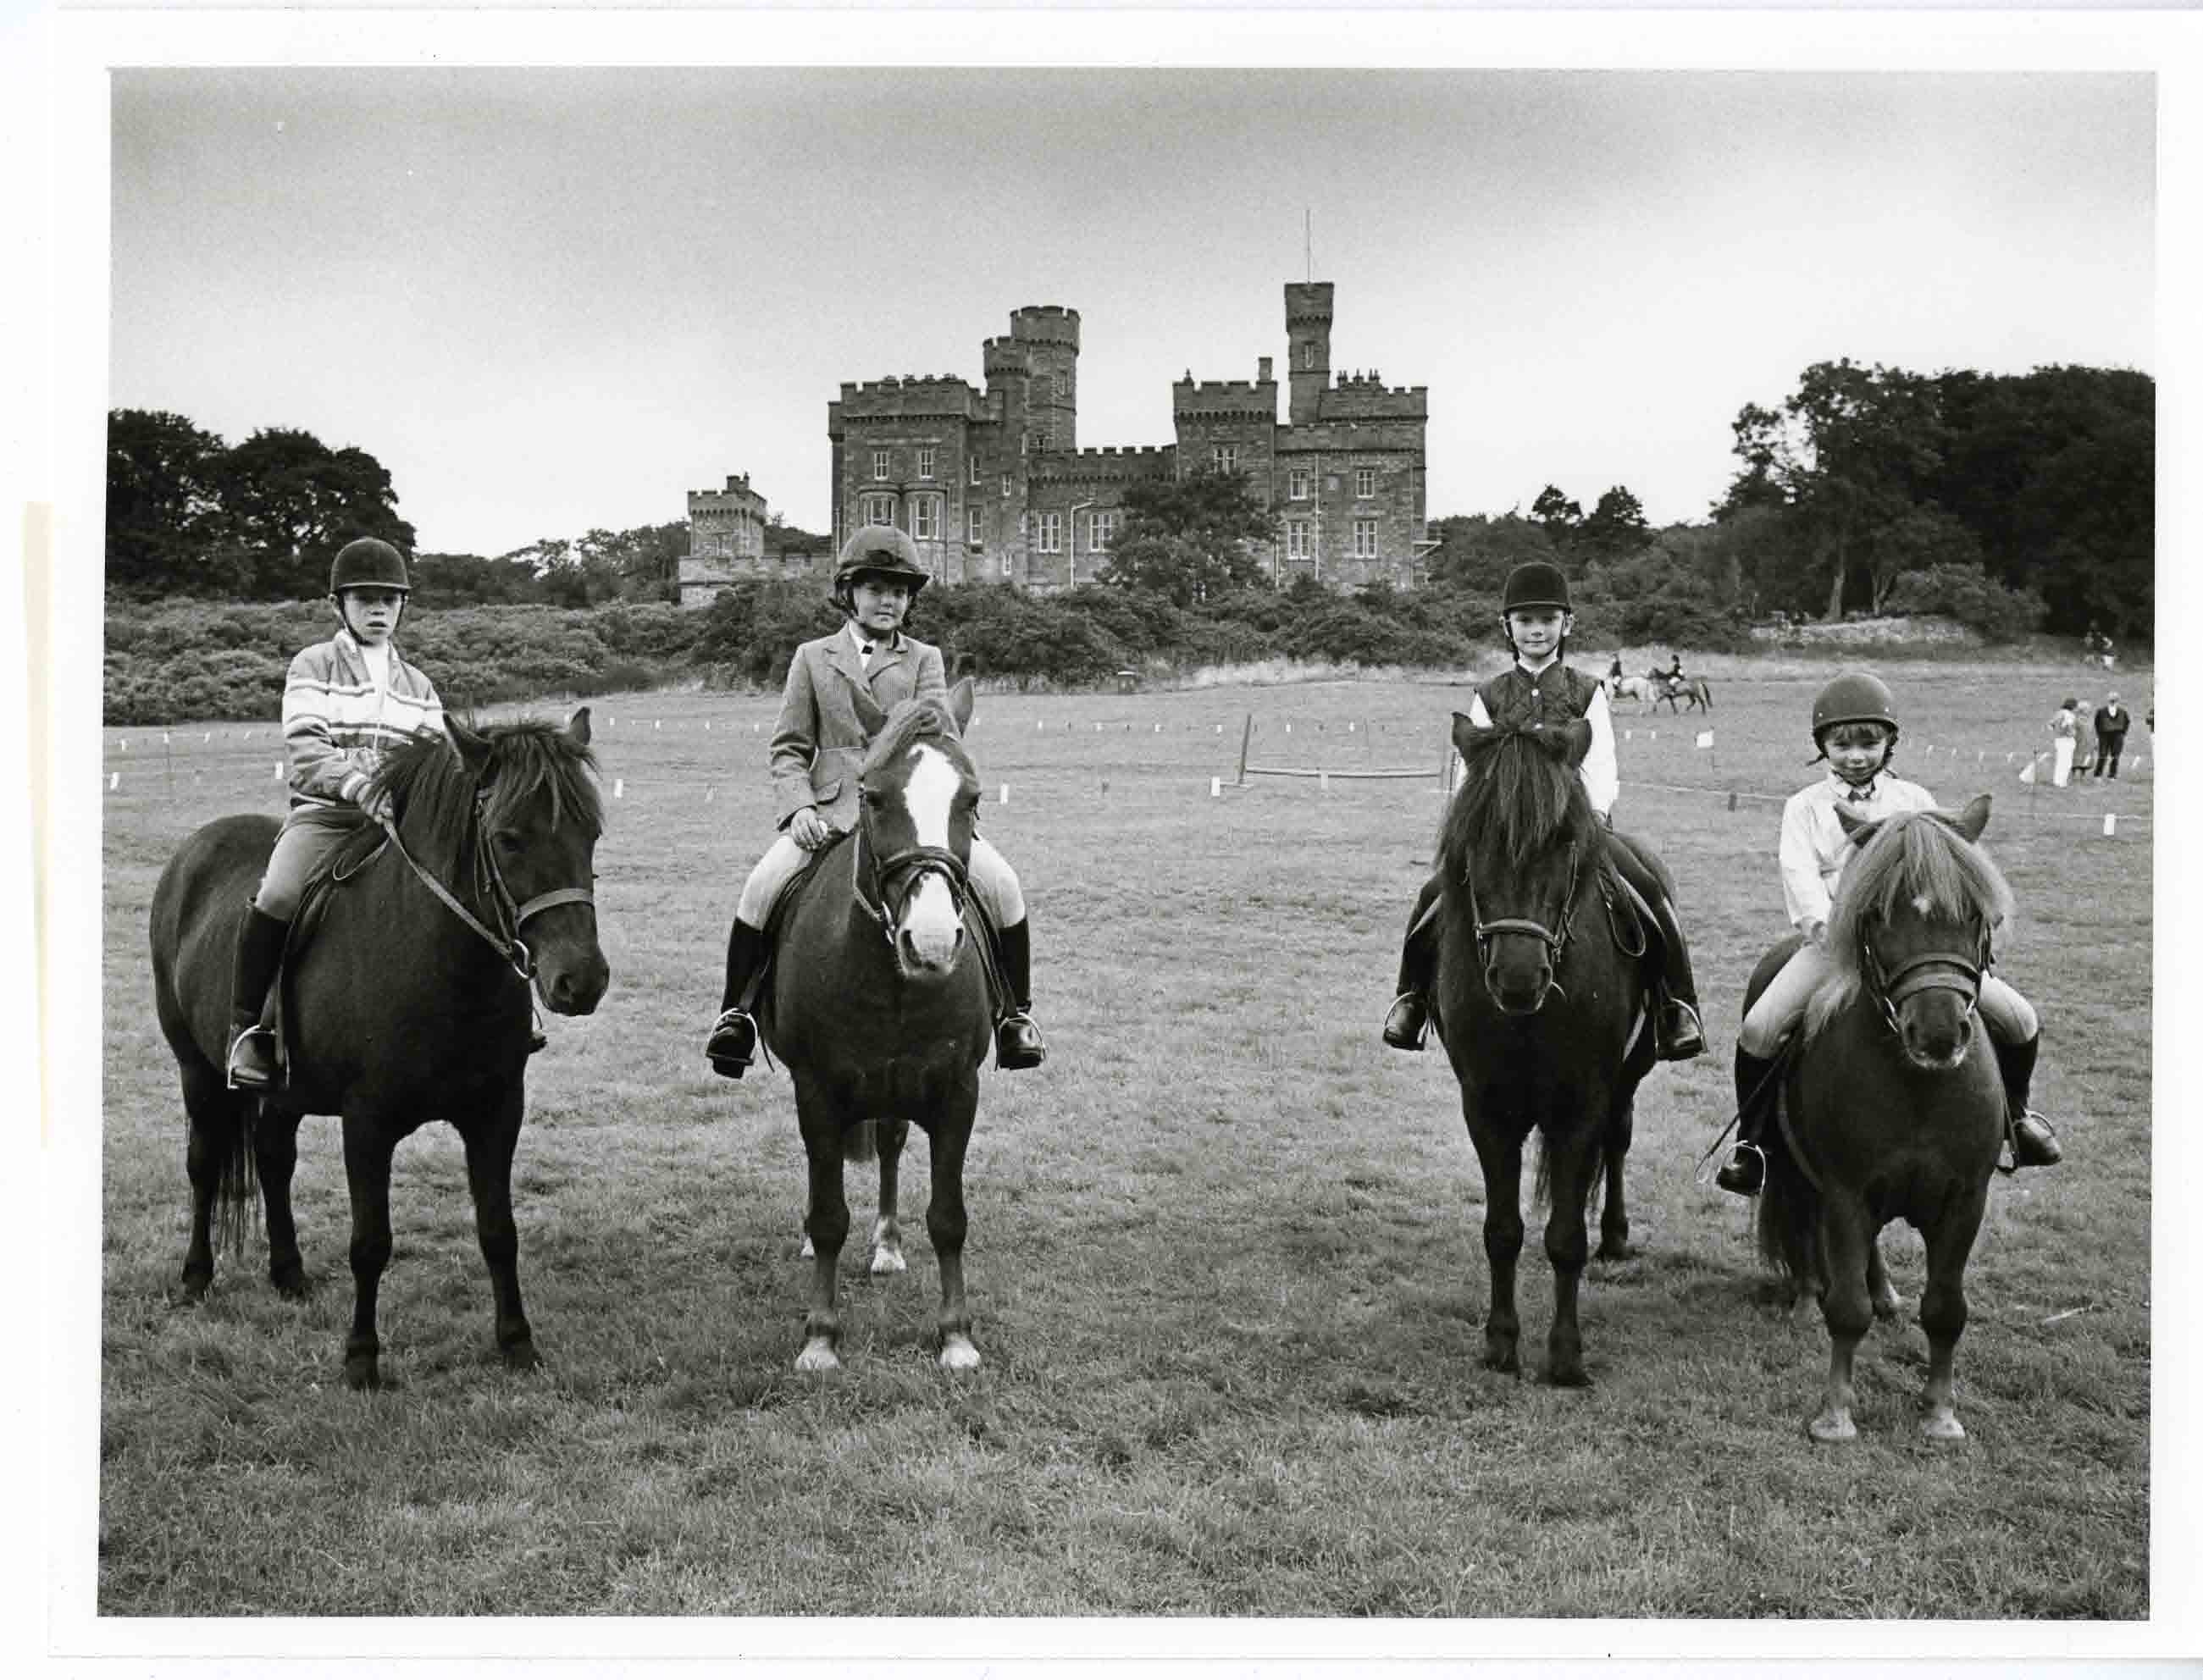 Children on ponies on the castle lawns